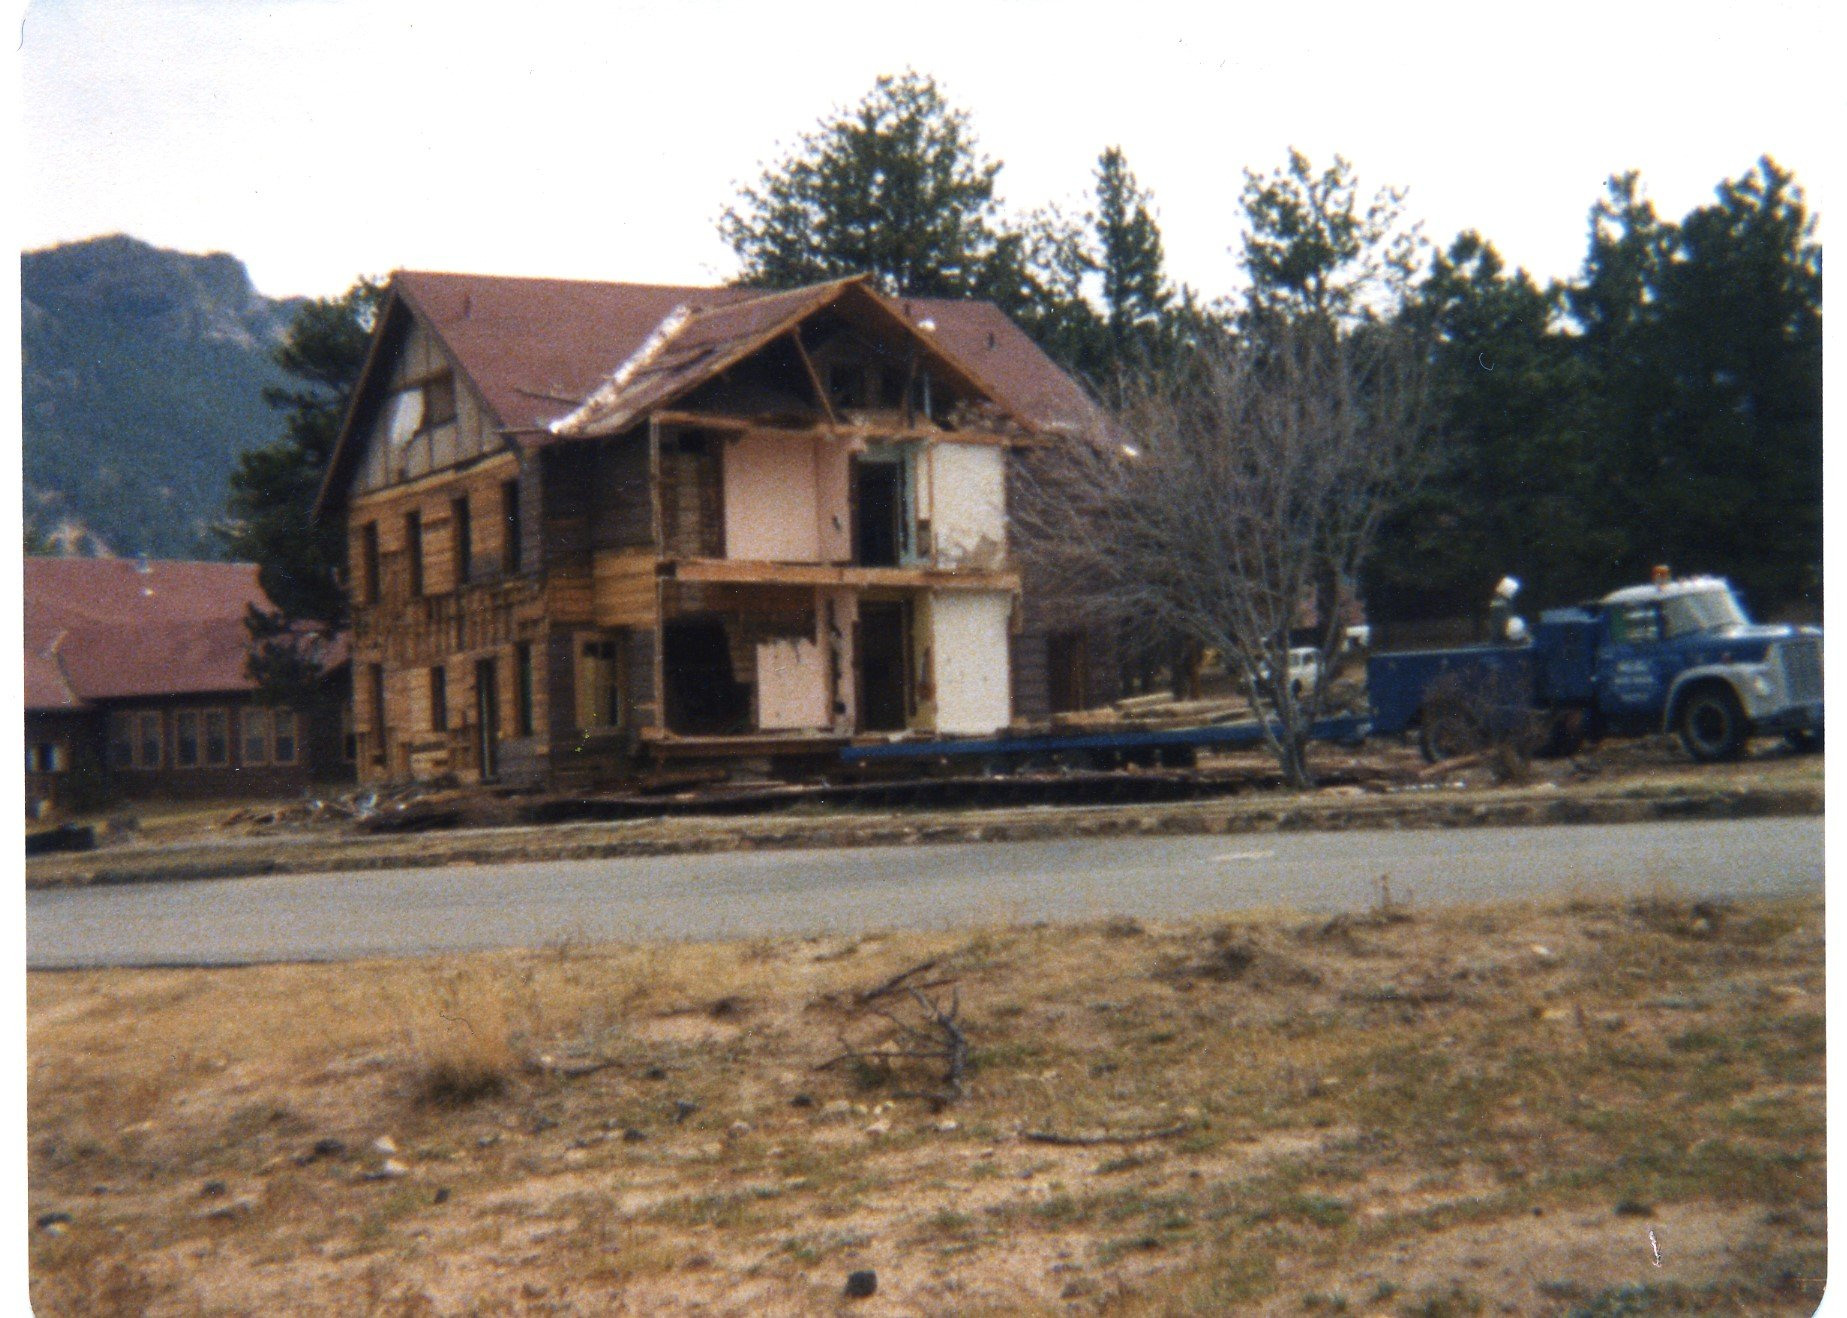 Old Wind River Lodge About to be Demolished